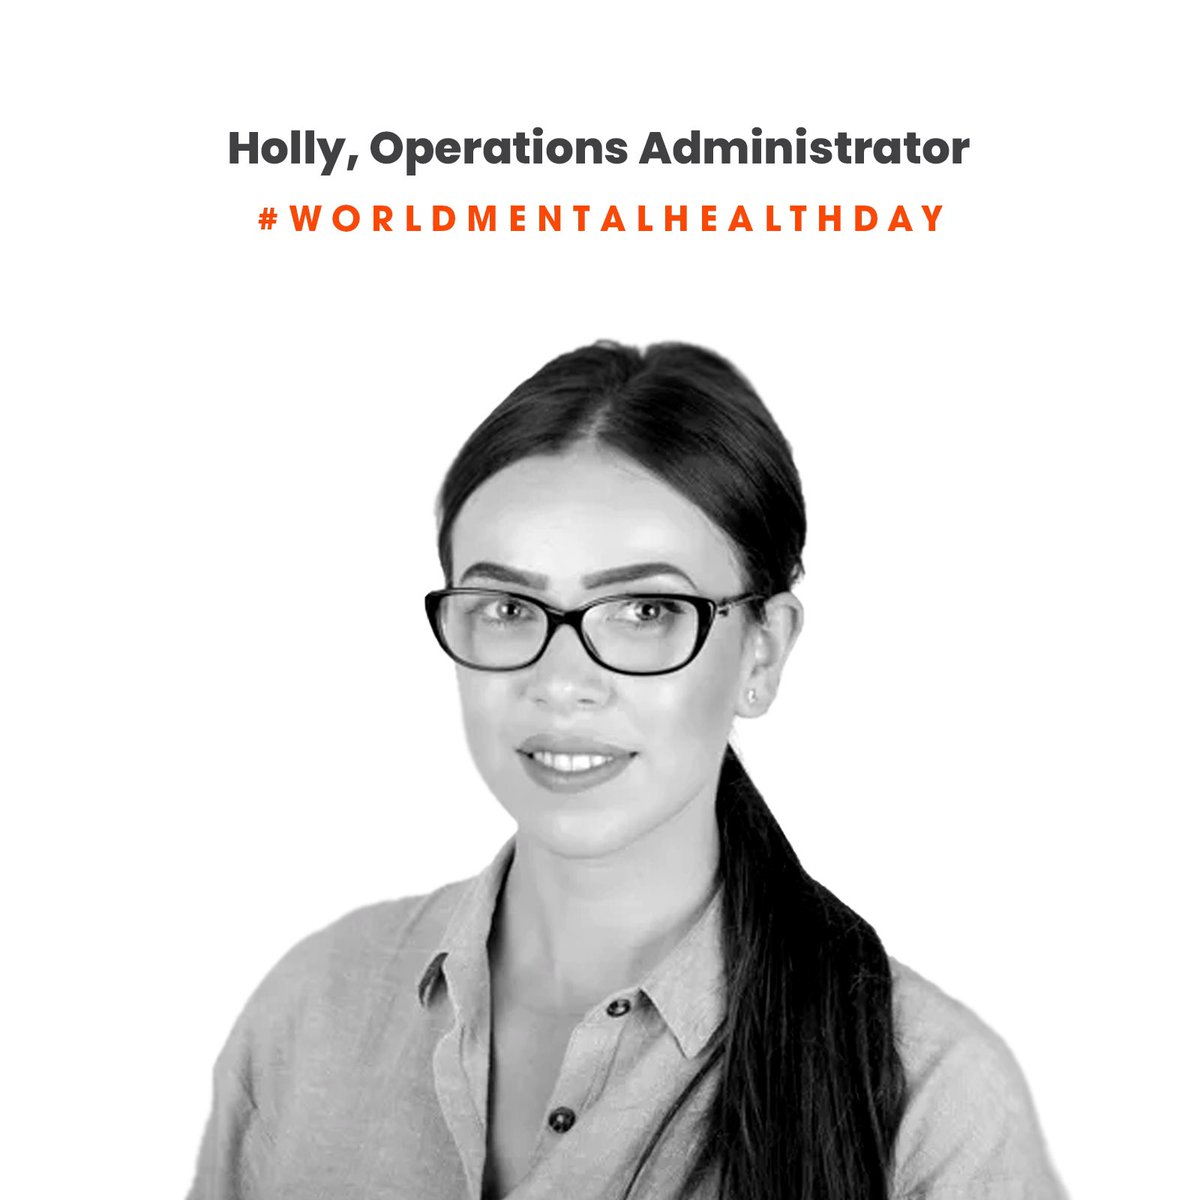 For the fourth of our #worldmentalhealthday chats with the Playground Games team we have Holly. Remember to take a moment to reflect and ask yourself, as well as others, how are we doing. https://t.co/oK99MeeAzk